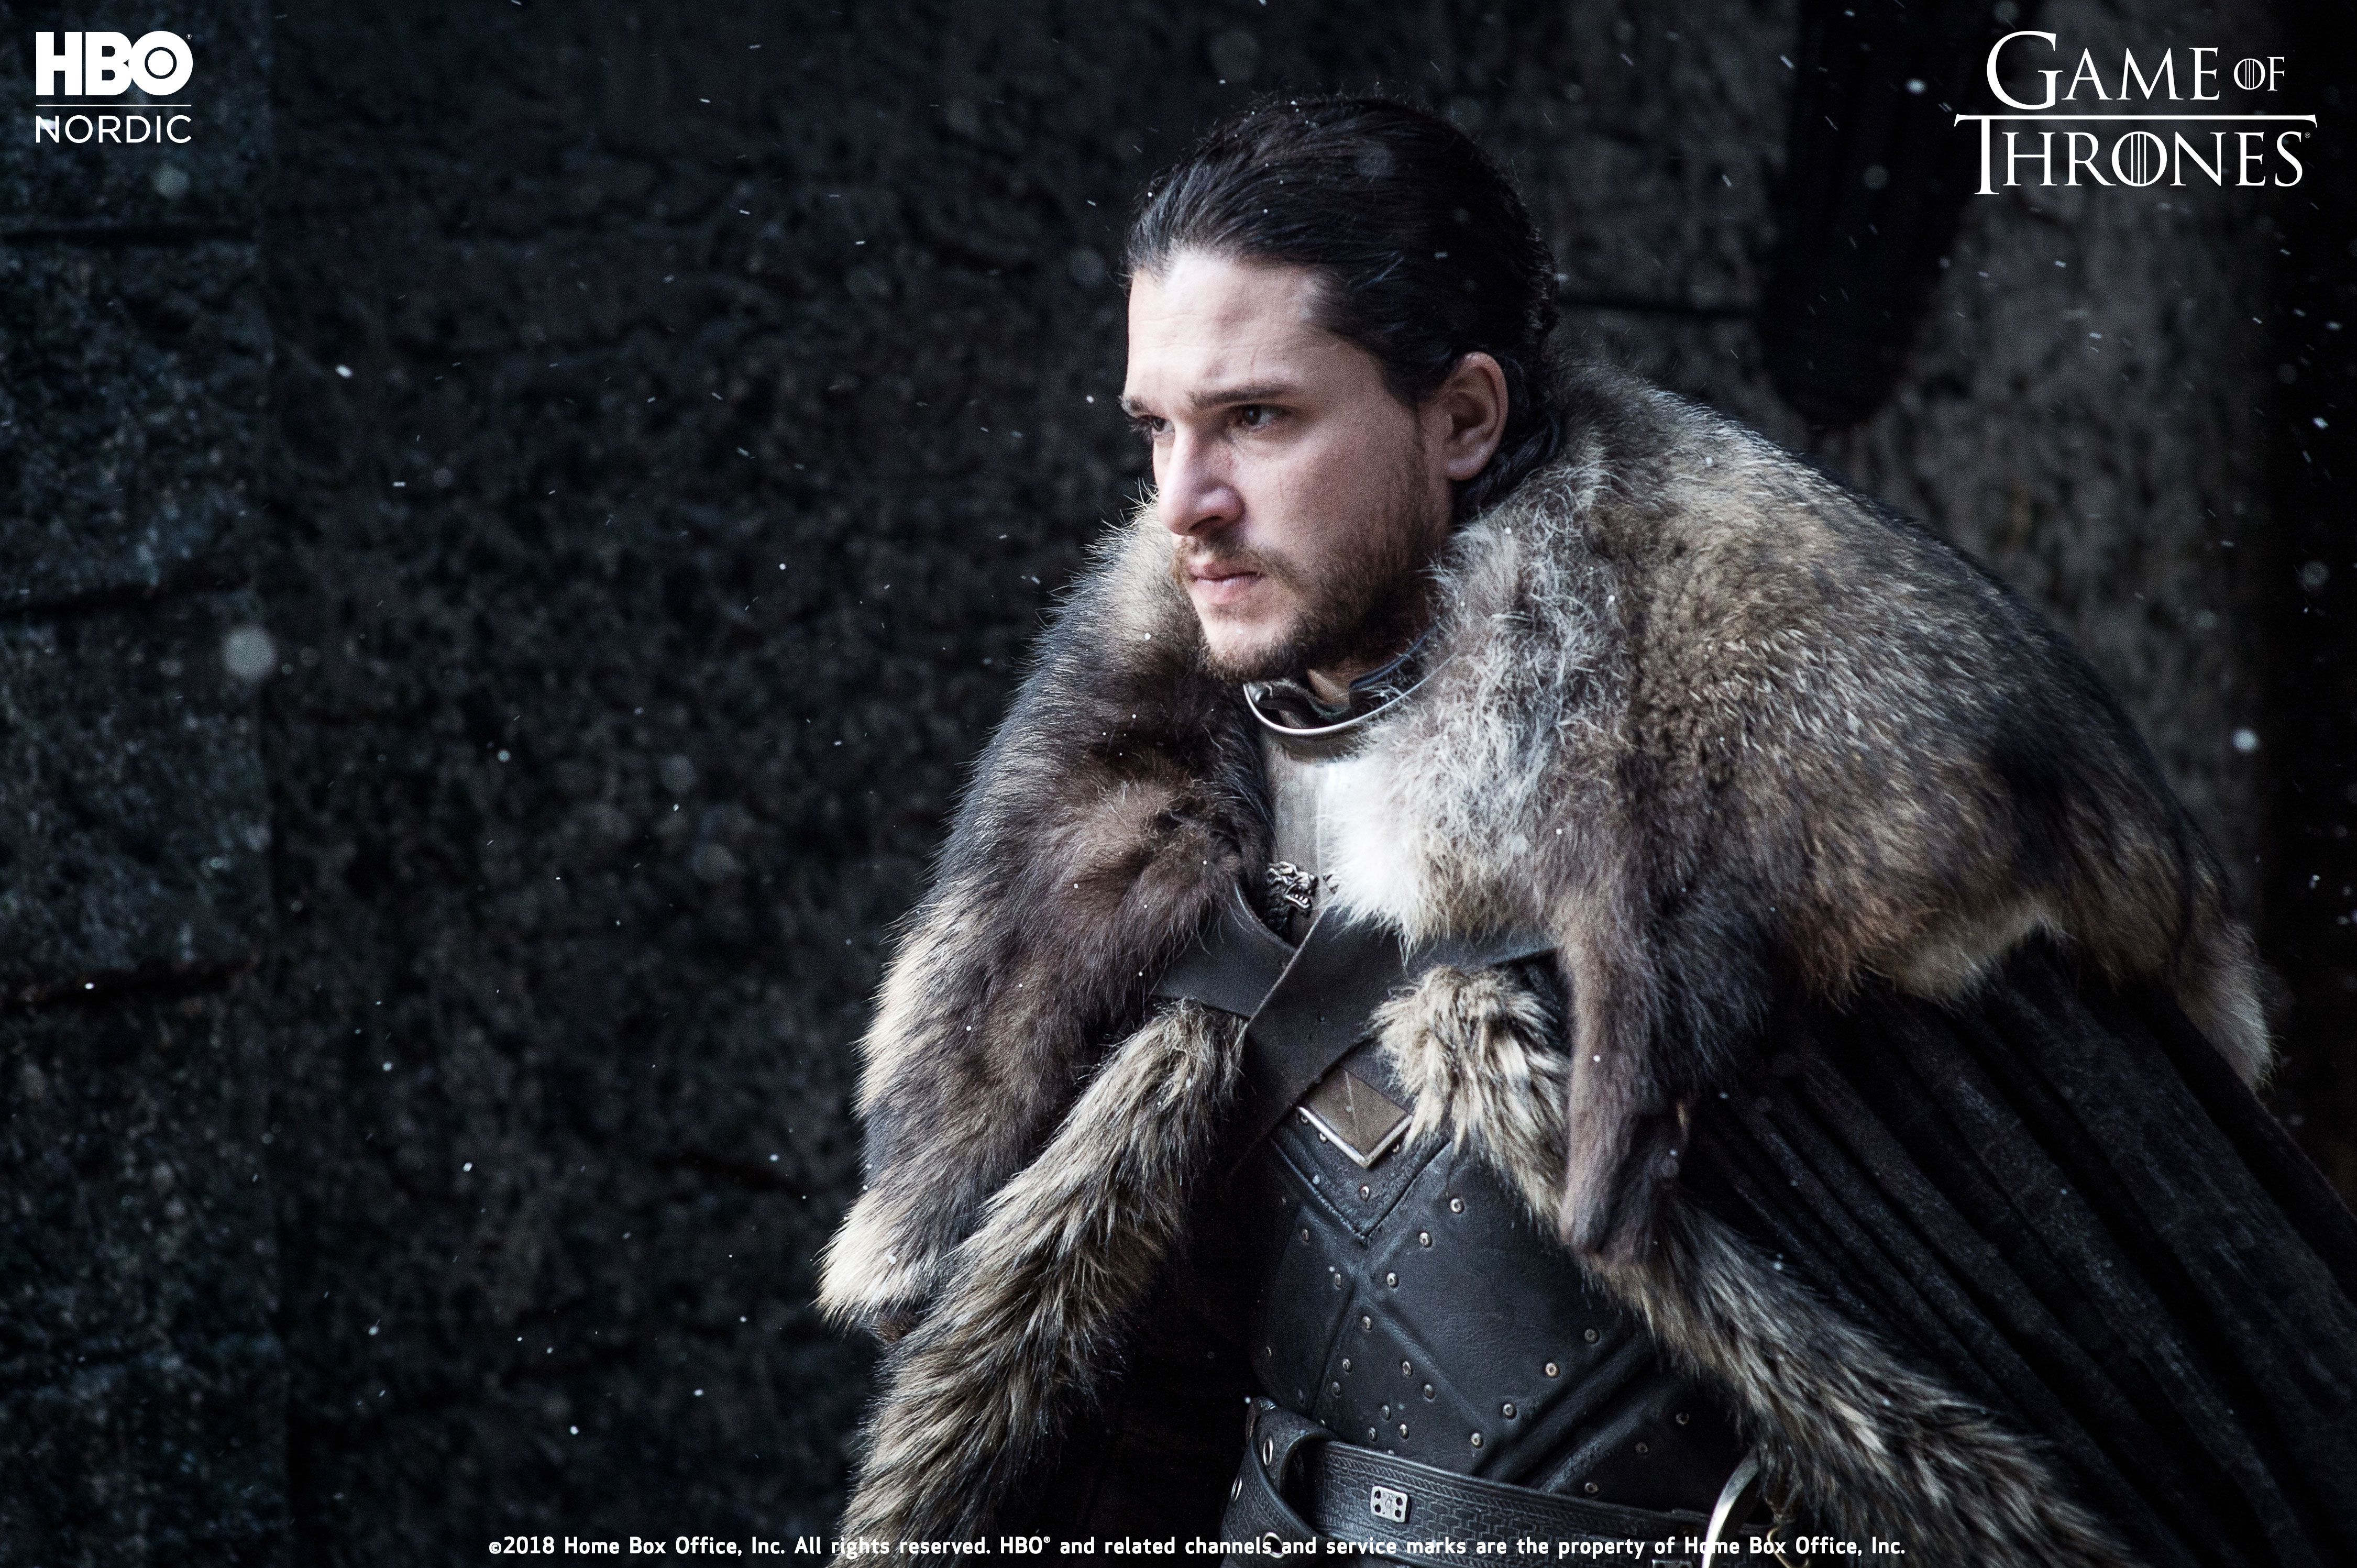 Jon Snow i Game of Thrones